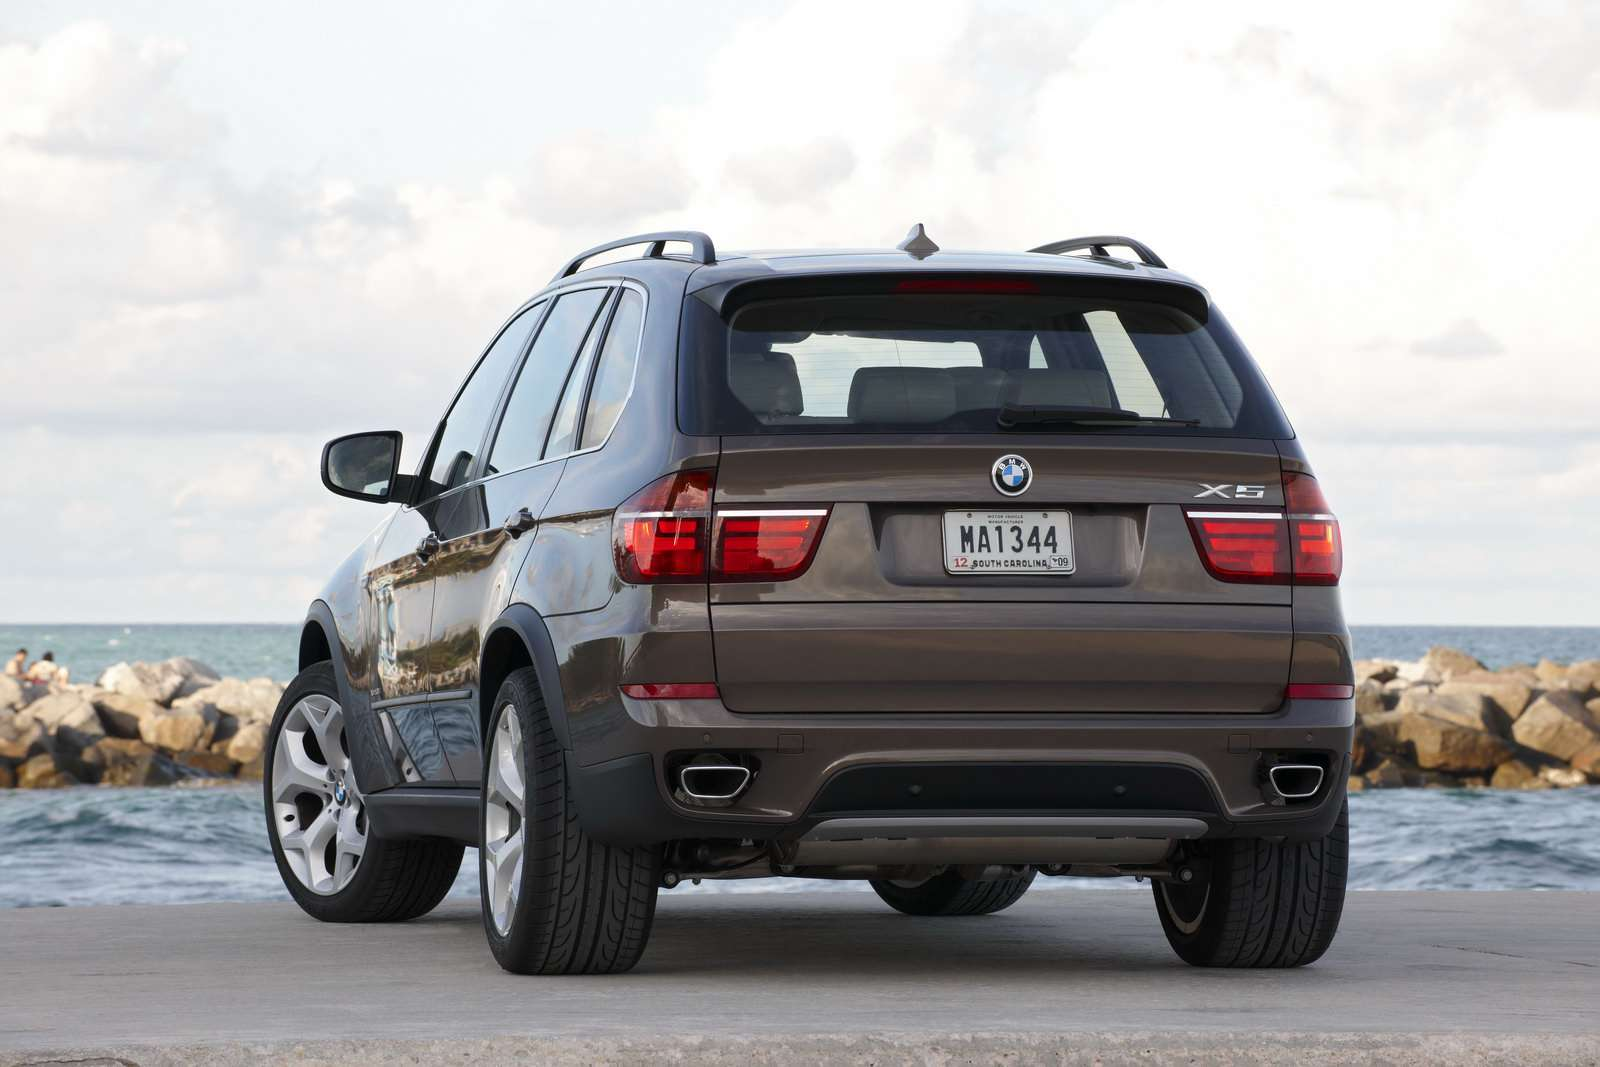 BMW X5 2010 Facelifting Genewa fot